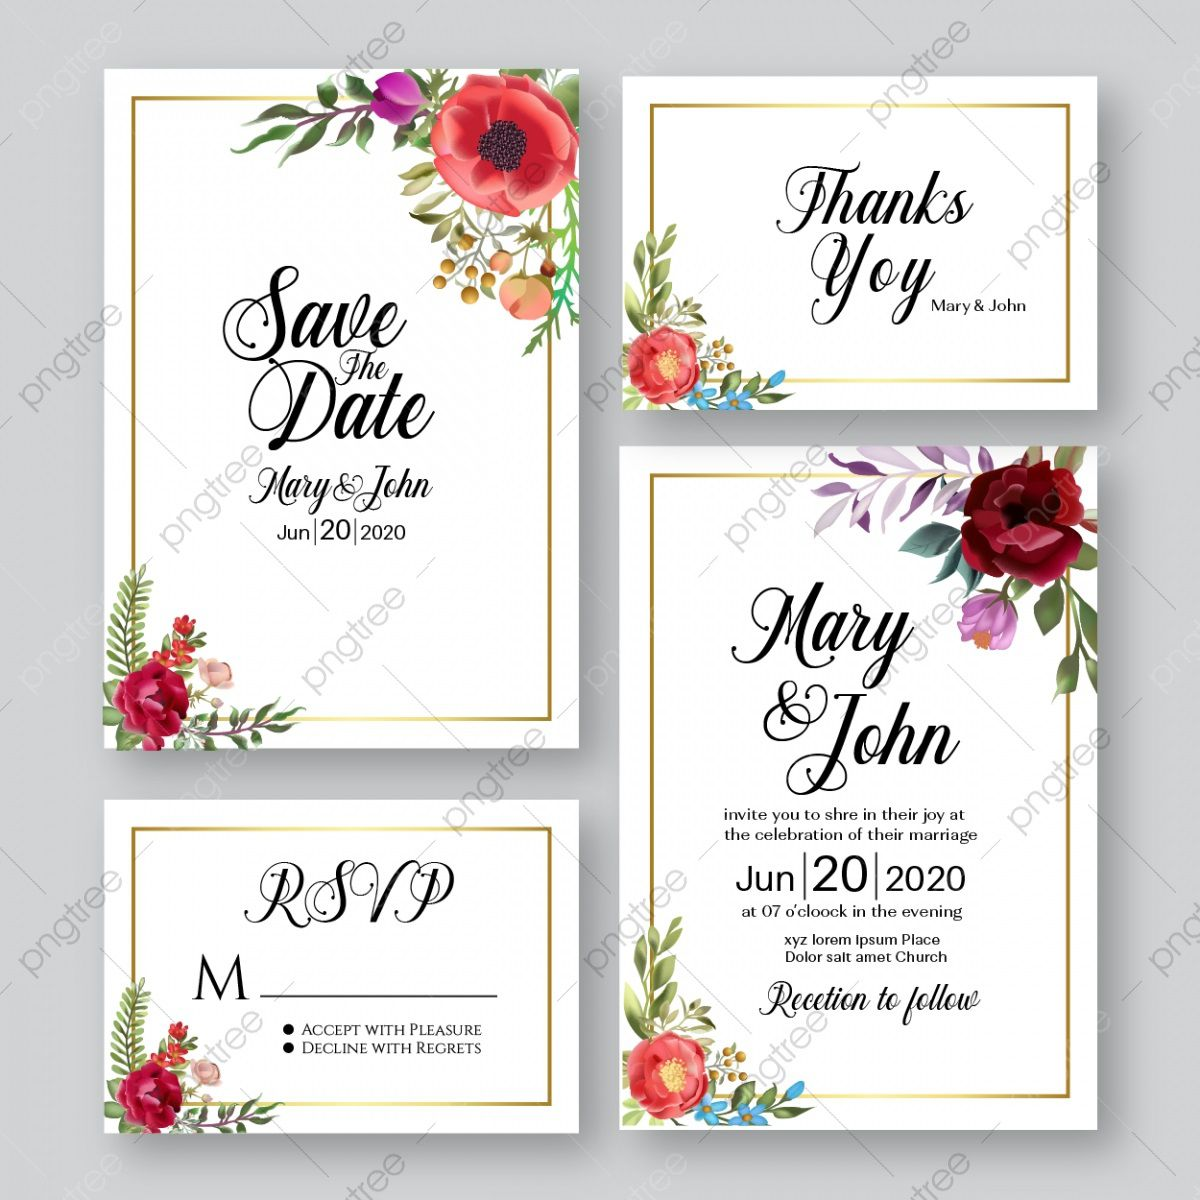 008 Breathtaking Free Download Invitation Card Format Design  Birthday Tamil Marriage In WordFull